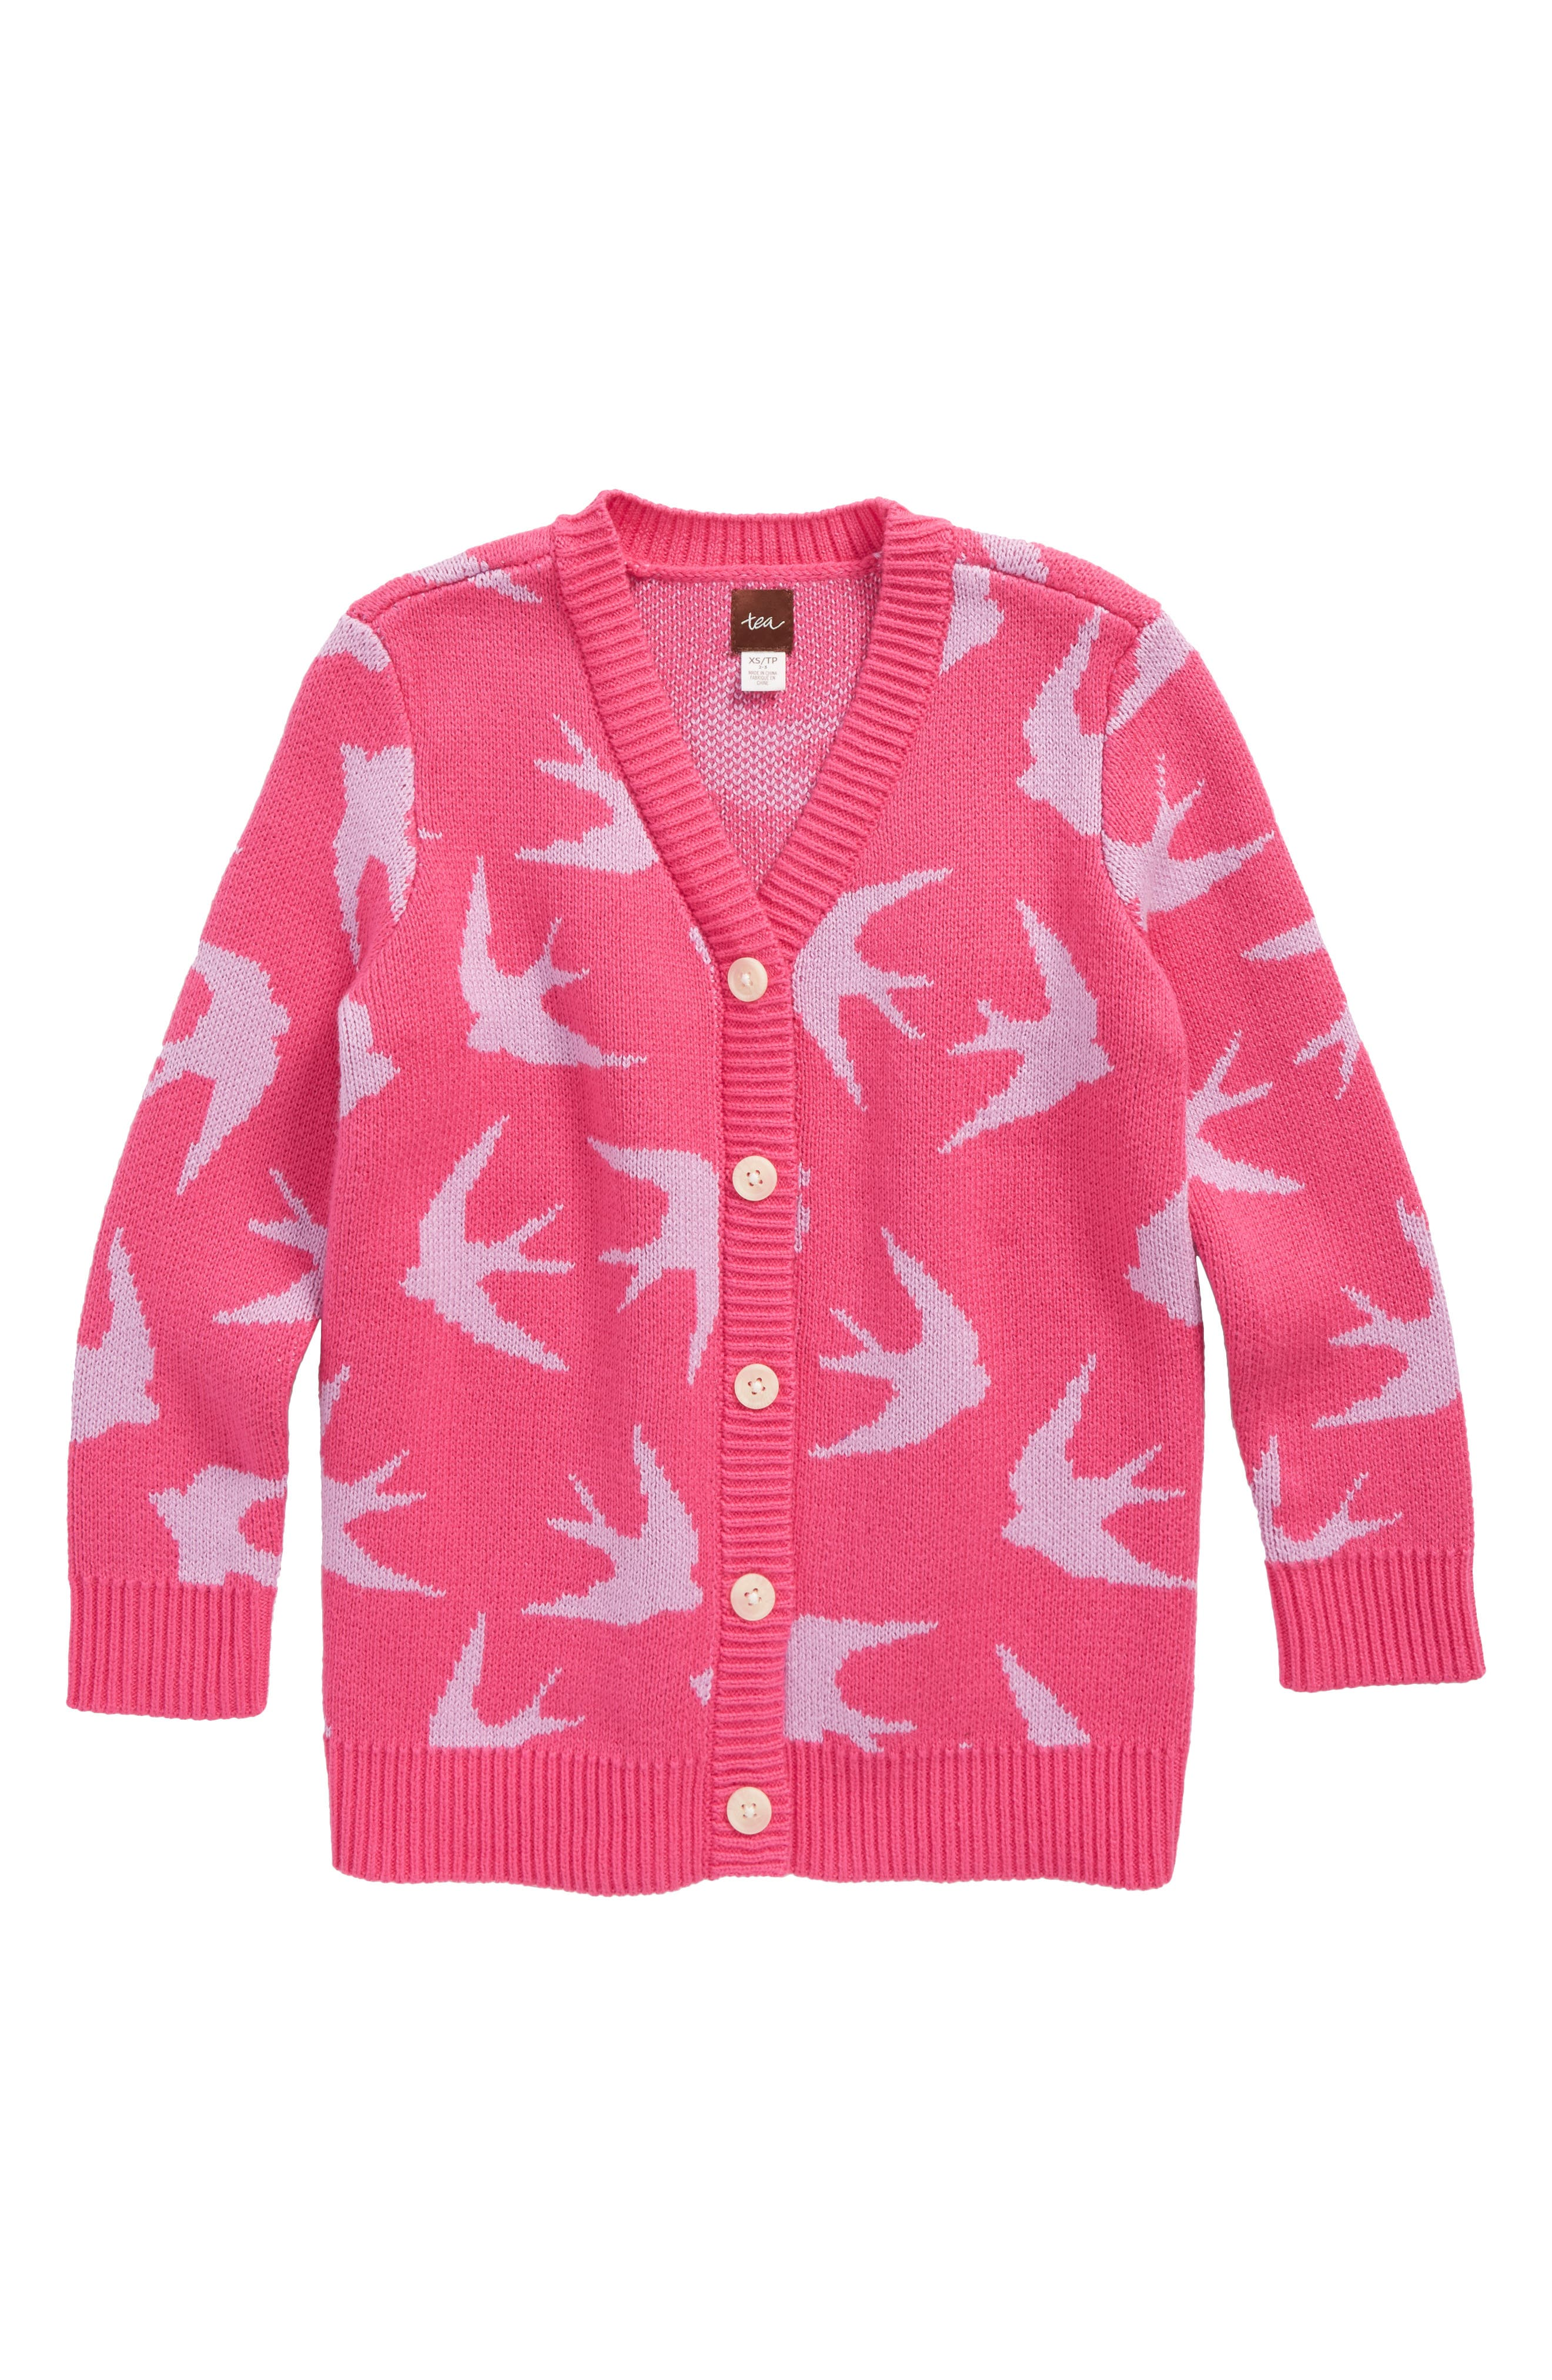 Main Image - Tea Collection Snow Bunting Intarsia Knit Cardigan (Toddler Girls, Little Girls & Big Girls)